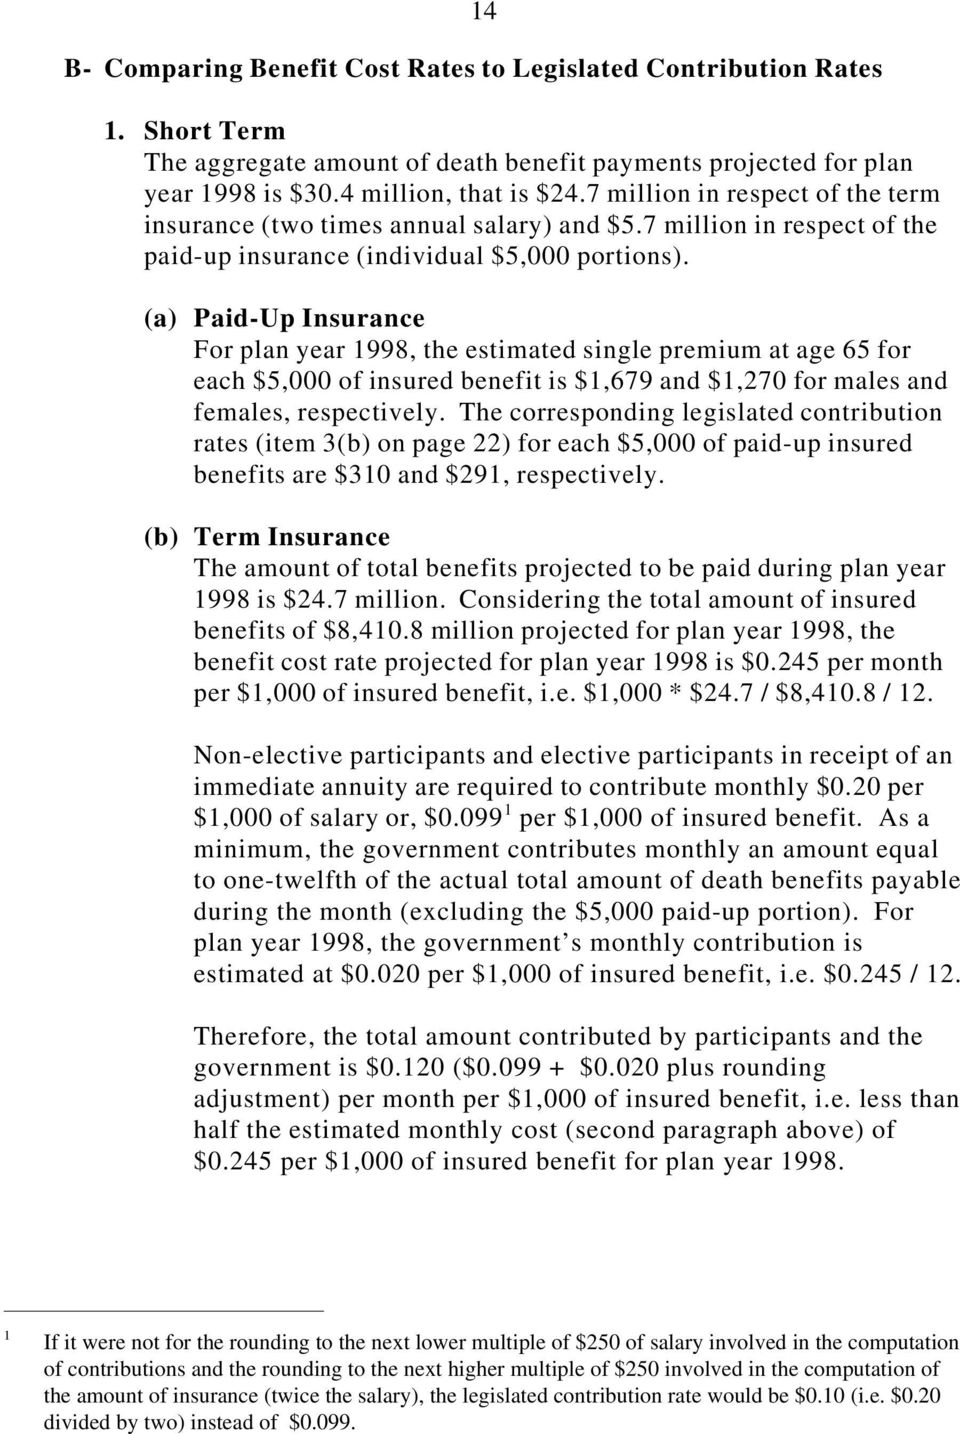 (a) Paid-Up Insurance For plan year 1998, the estimated single premium at age 65 for each $5,000 of insured benefit is $1,679 and $1,270 for males and females, respectively.